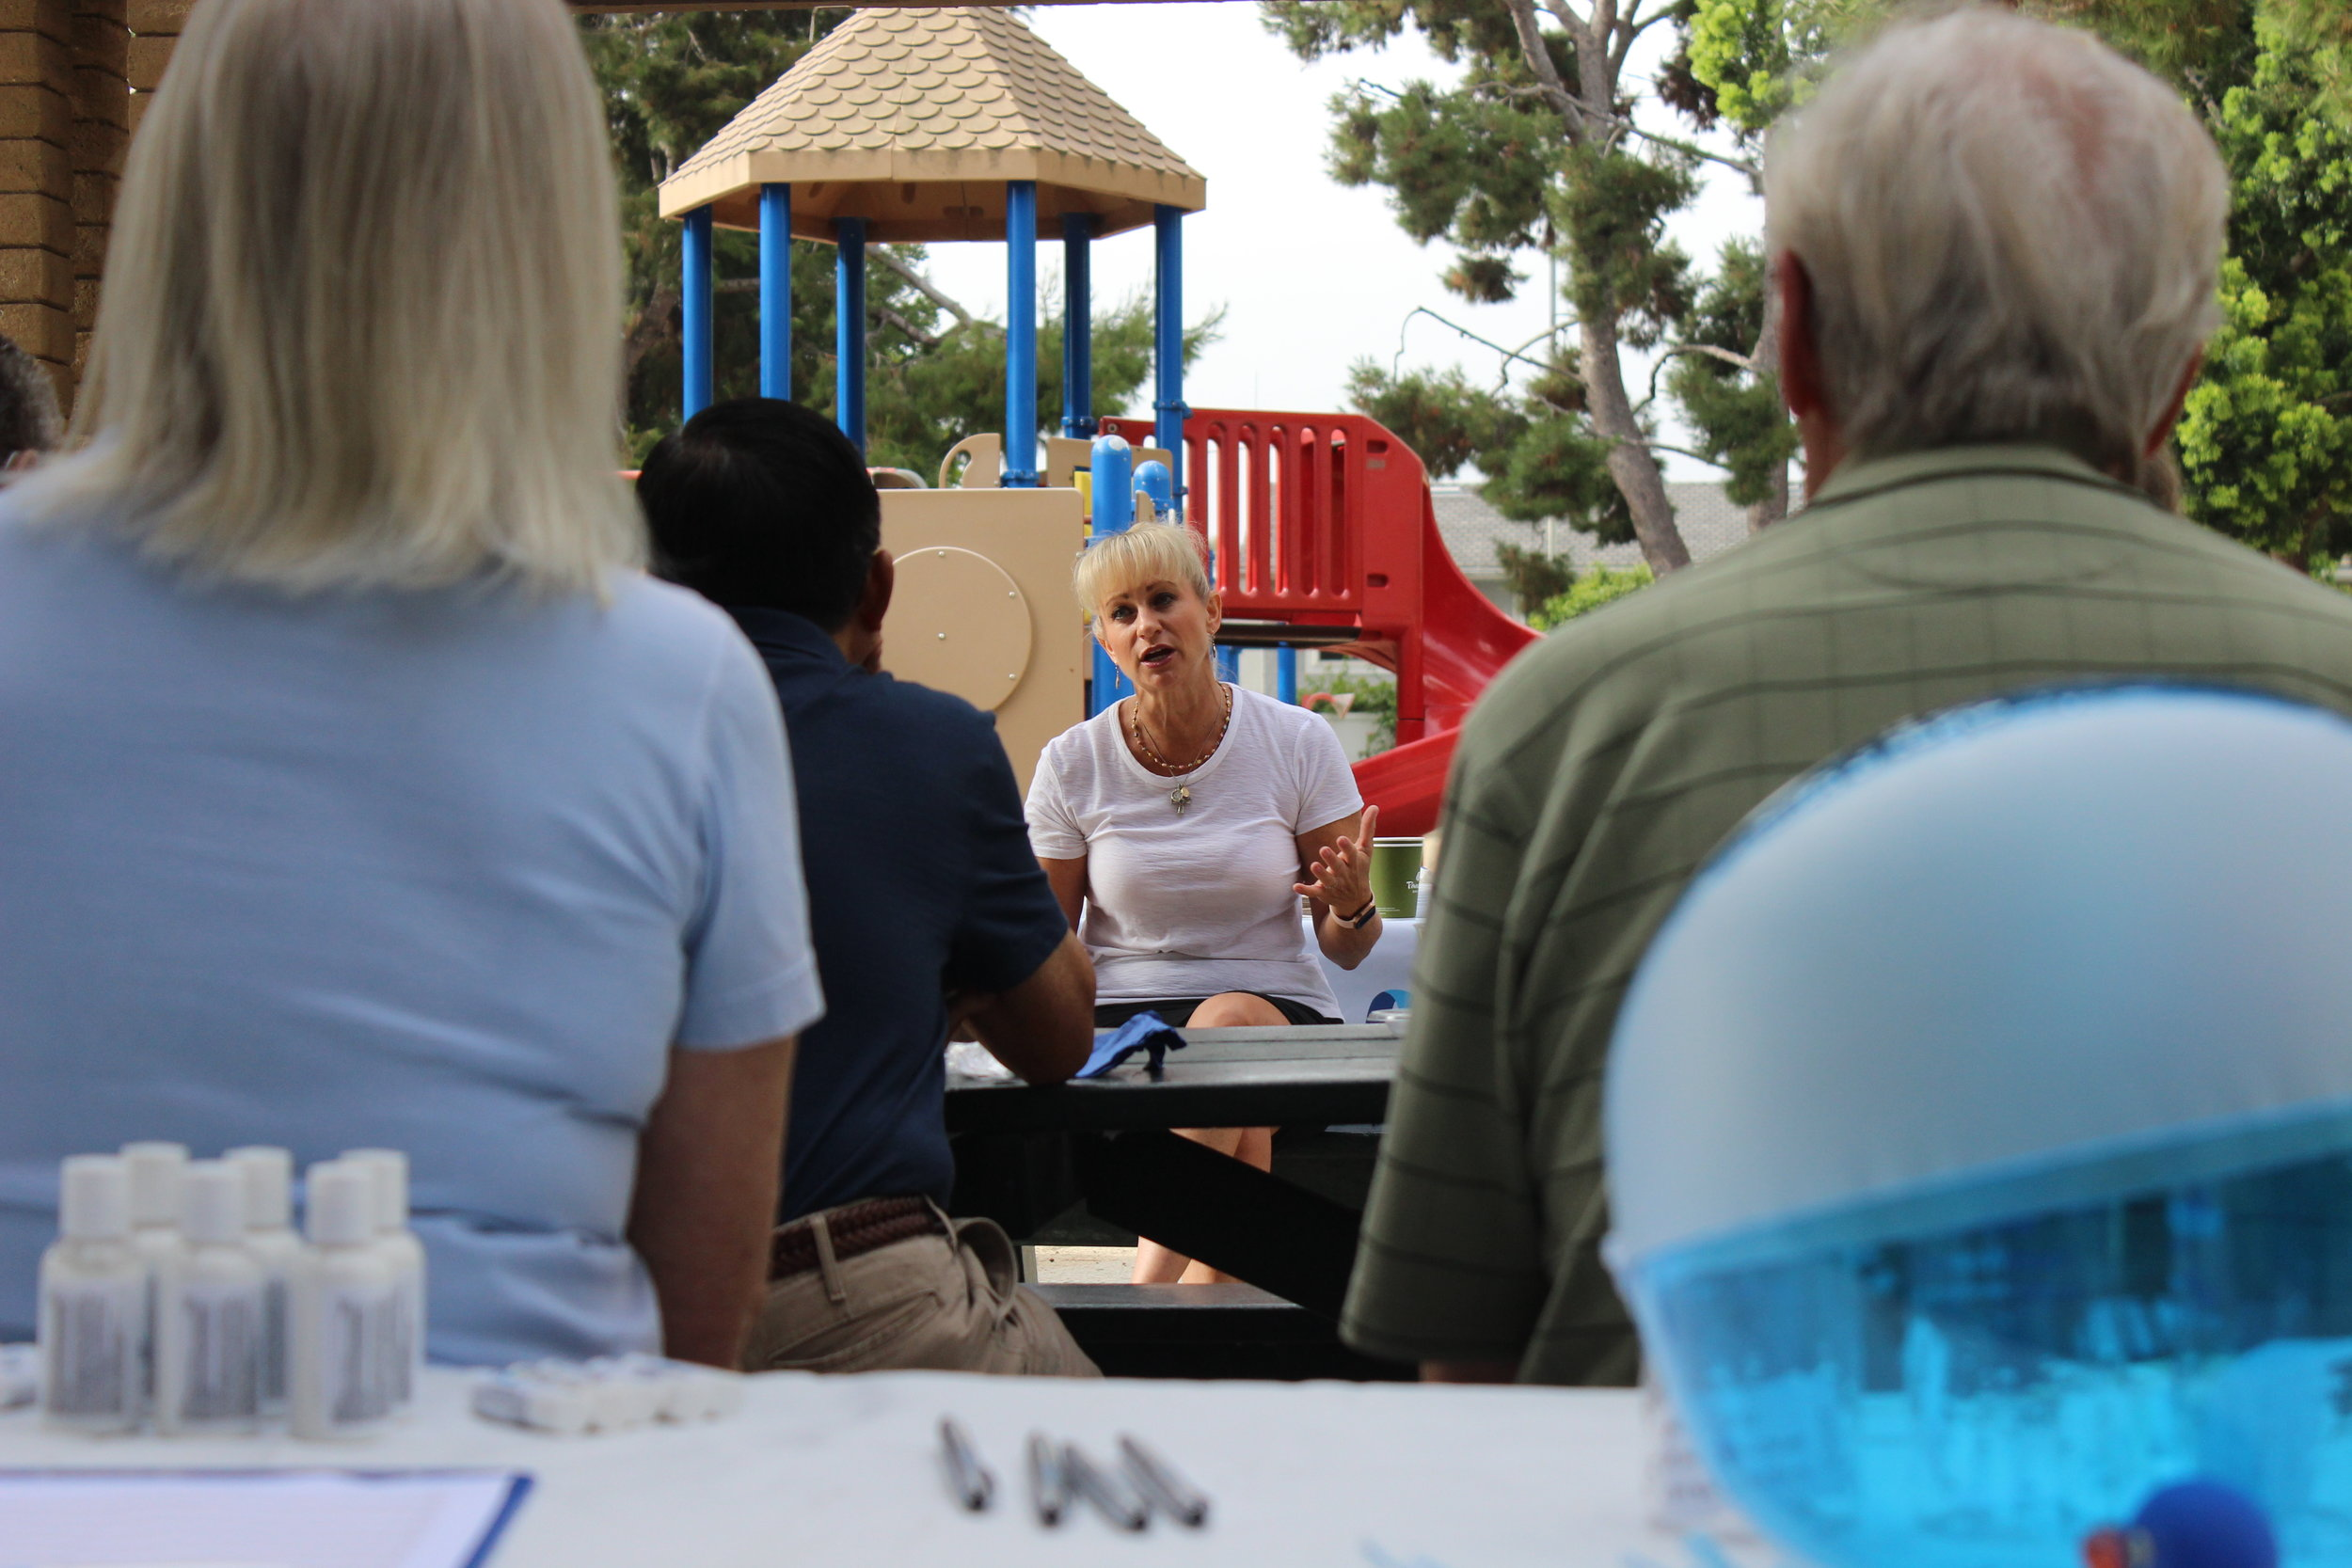 This is Mesa Water District's Board Vice President Marice DePasquale at our Neighborhood Chats event. I was tasked with setting up these community outreach events to take pictures and promote the event via social media.